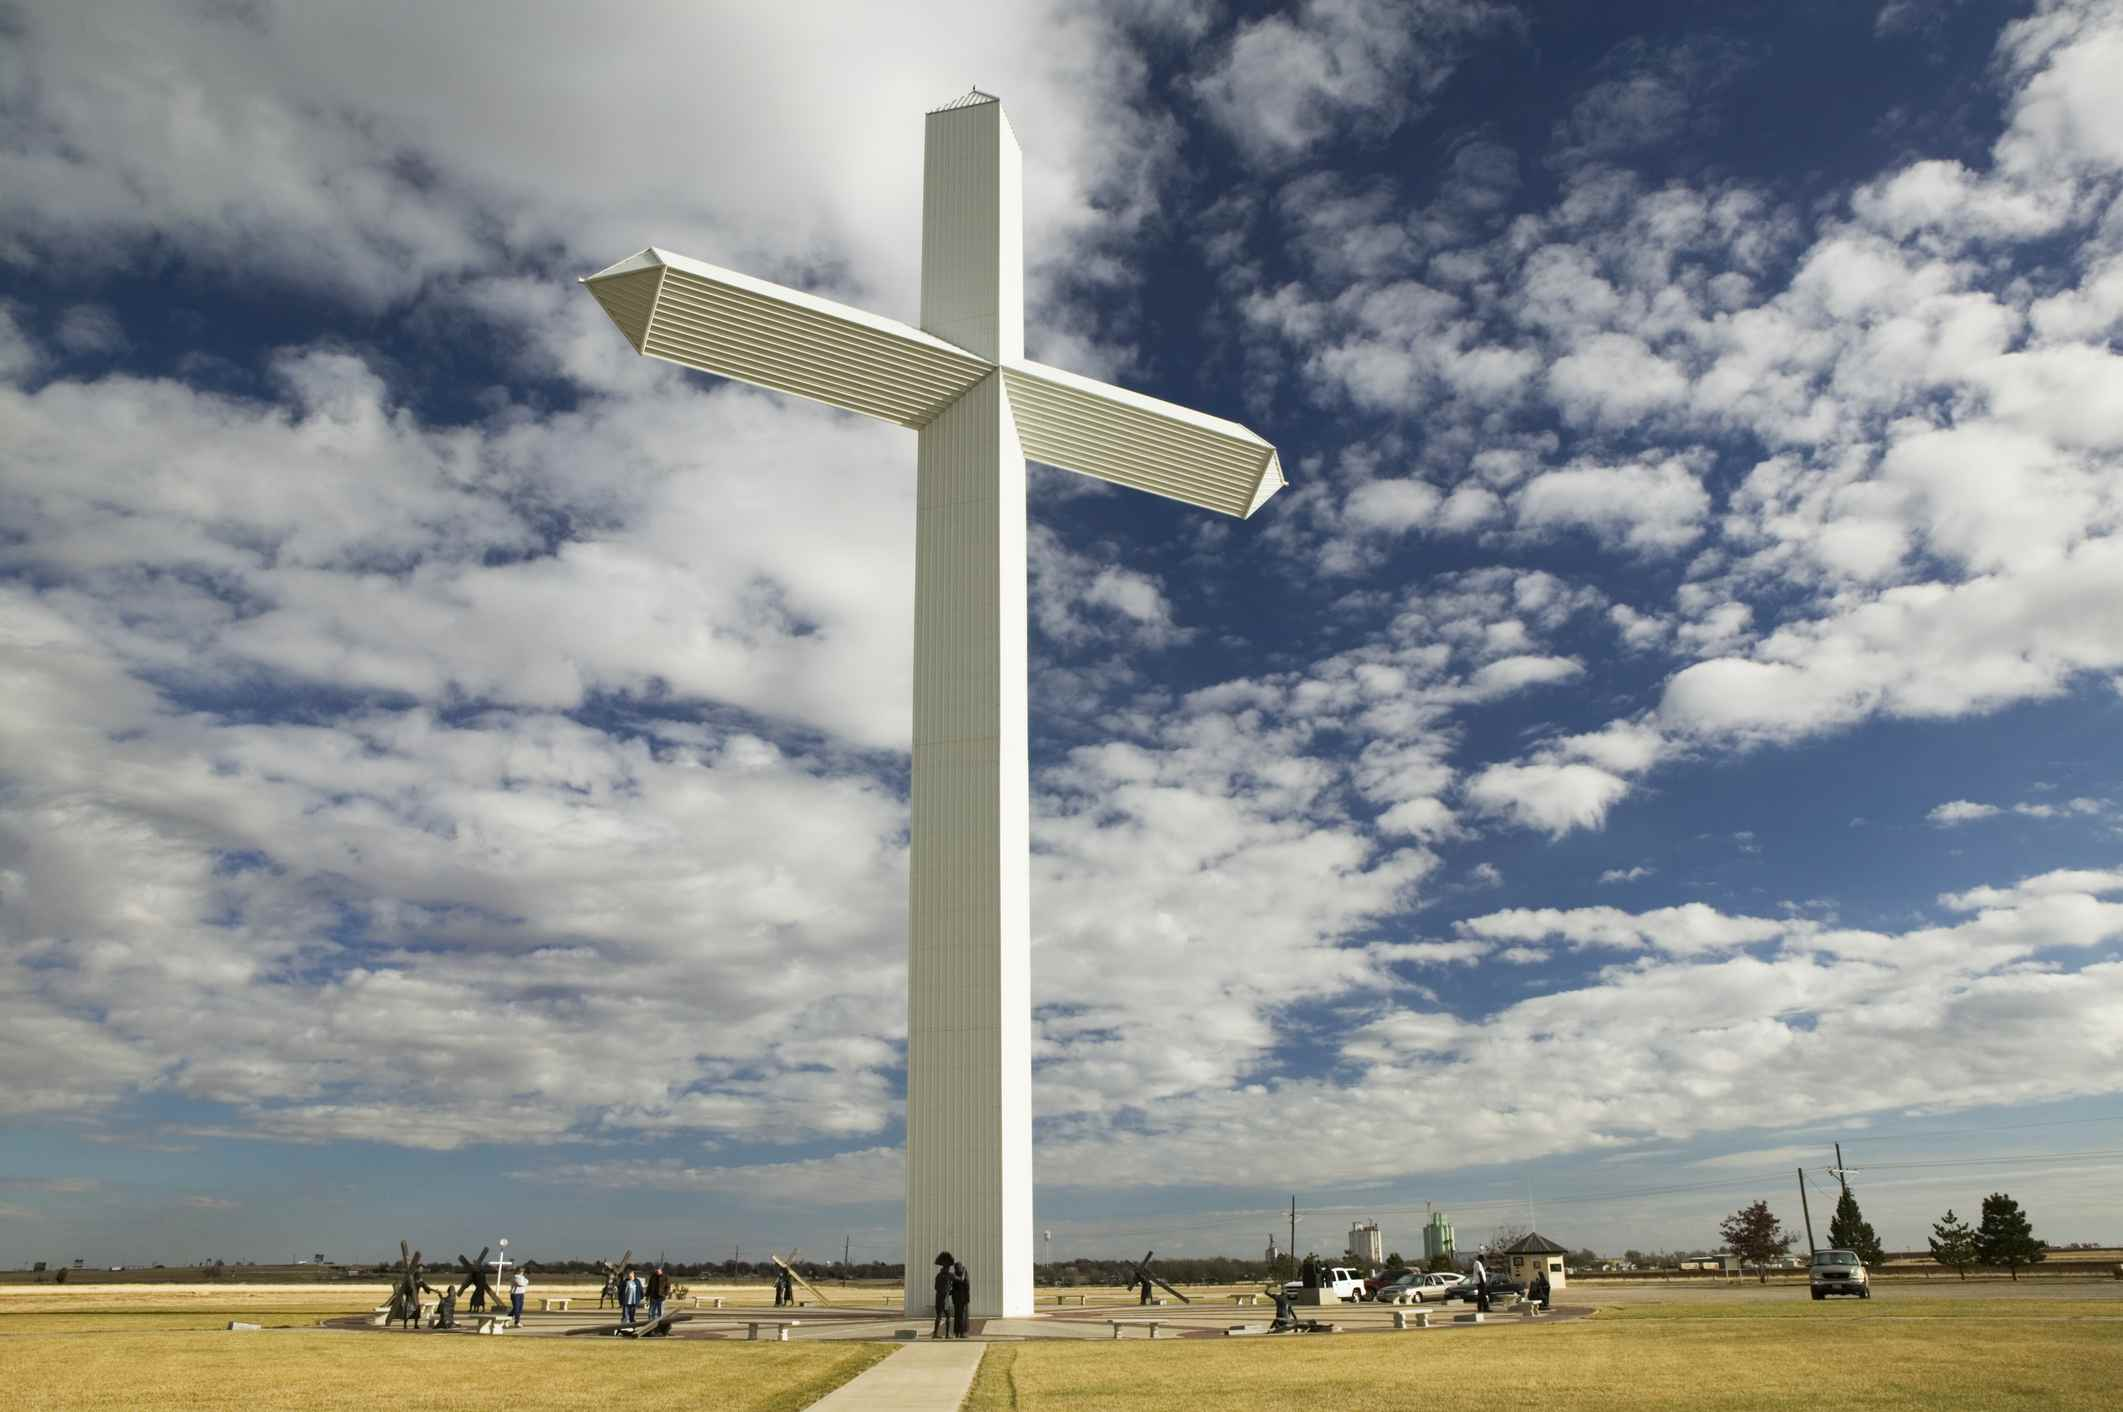 USA, Texas, Panhandle area, Cross of Our Lord